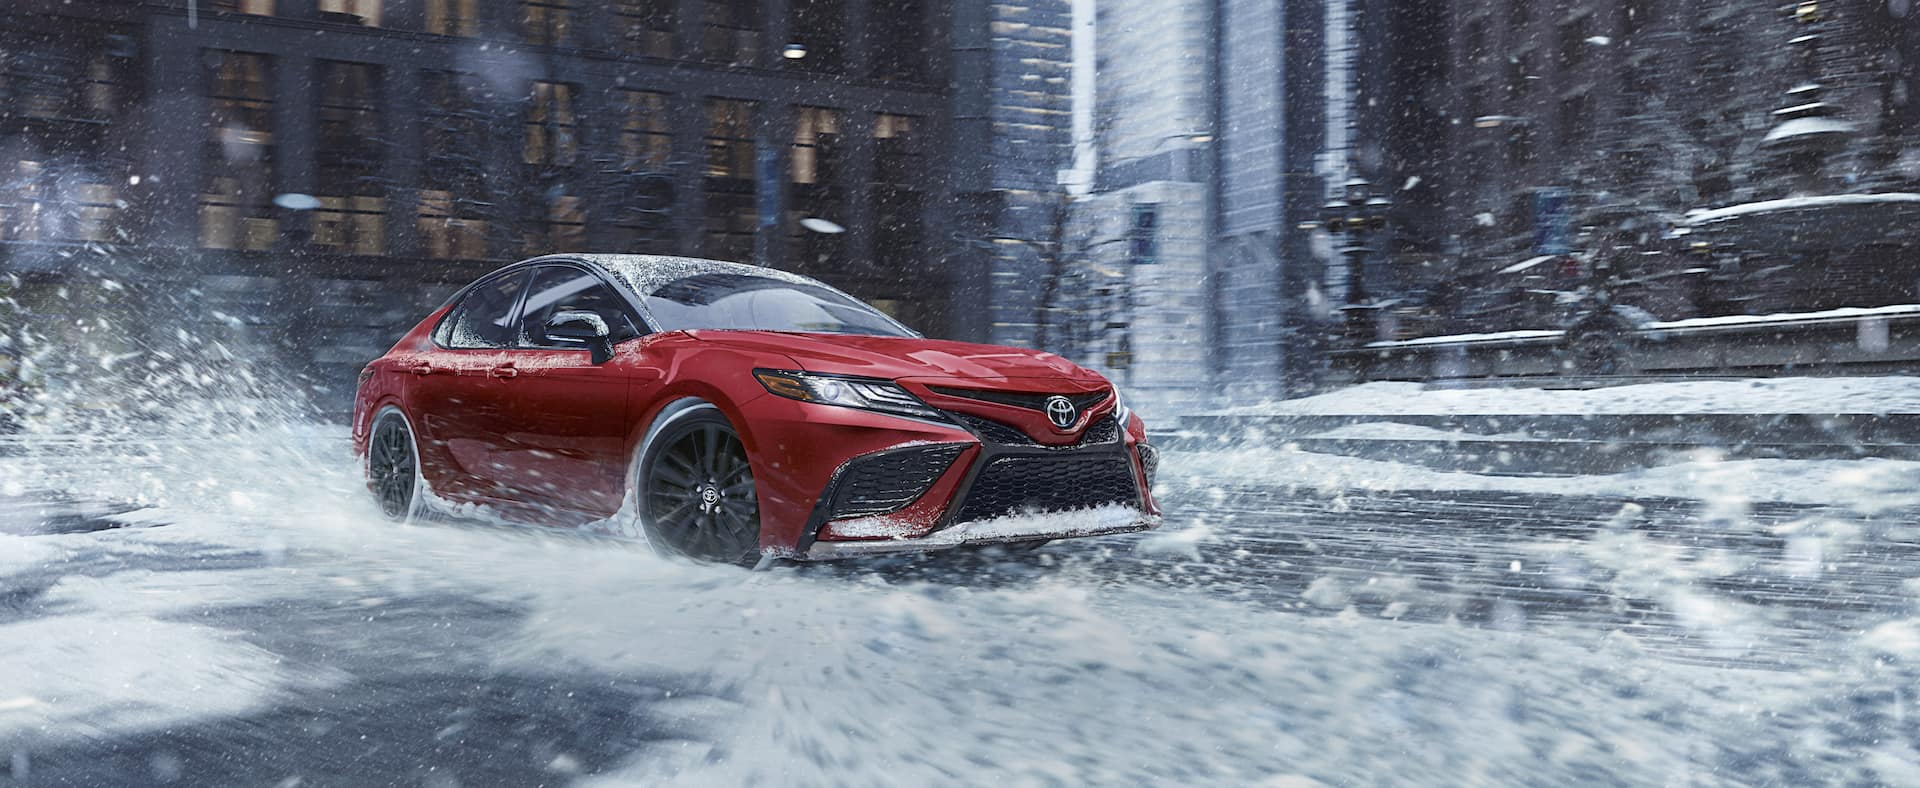 2021 Toyota Camry versus 2021 Honda Accord Comparison at Lancaster Toyota in East Petersburg | 2021 Toyota Camry on snowy city road